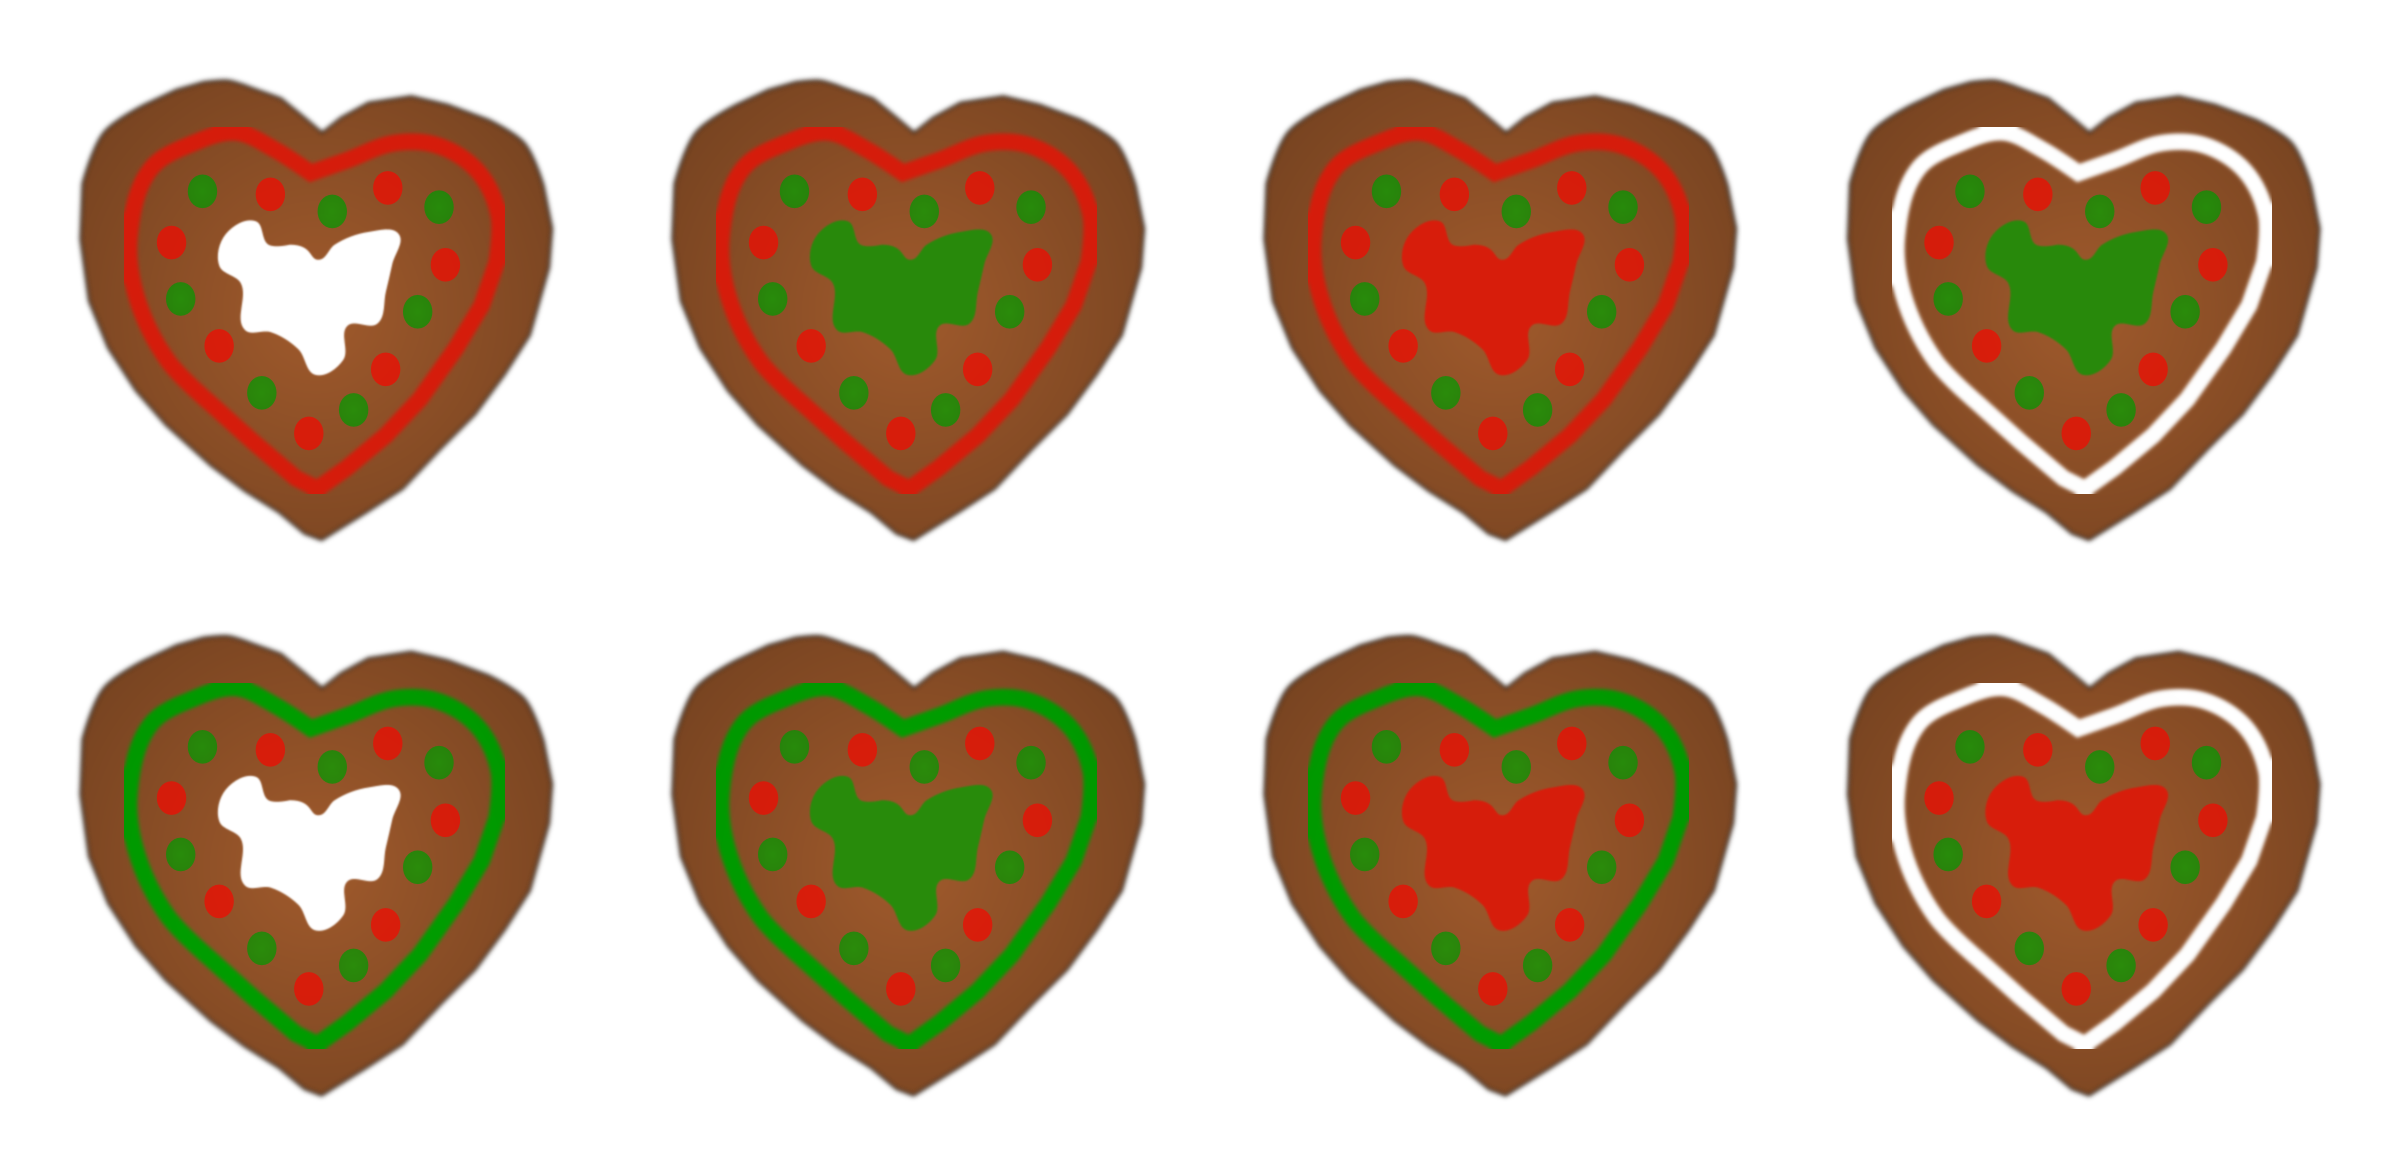 Heart cookies clipart banner freeuse library Clipart - Assorted Gingerbread Heart Cookies banner freeuse library